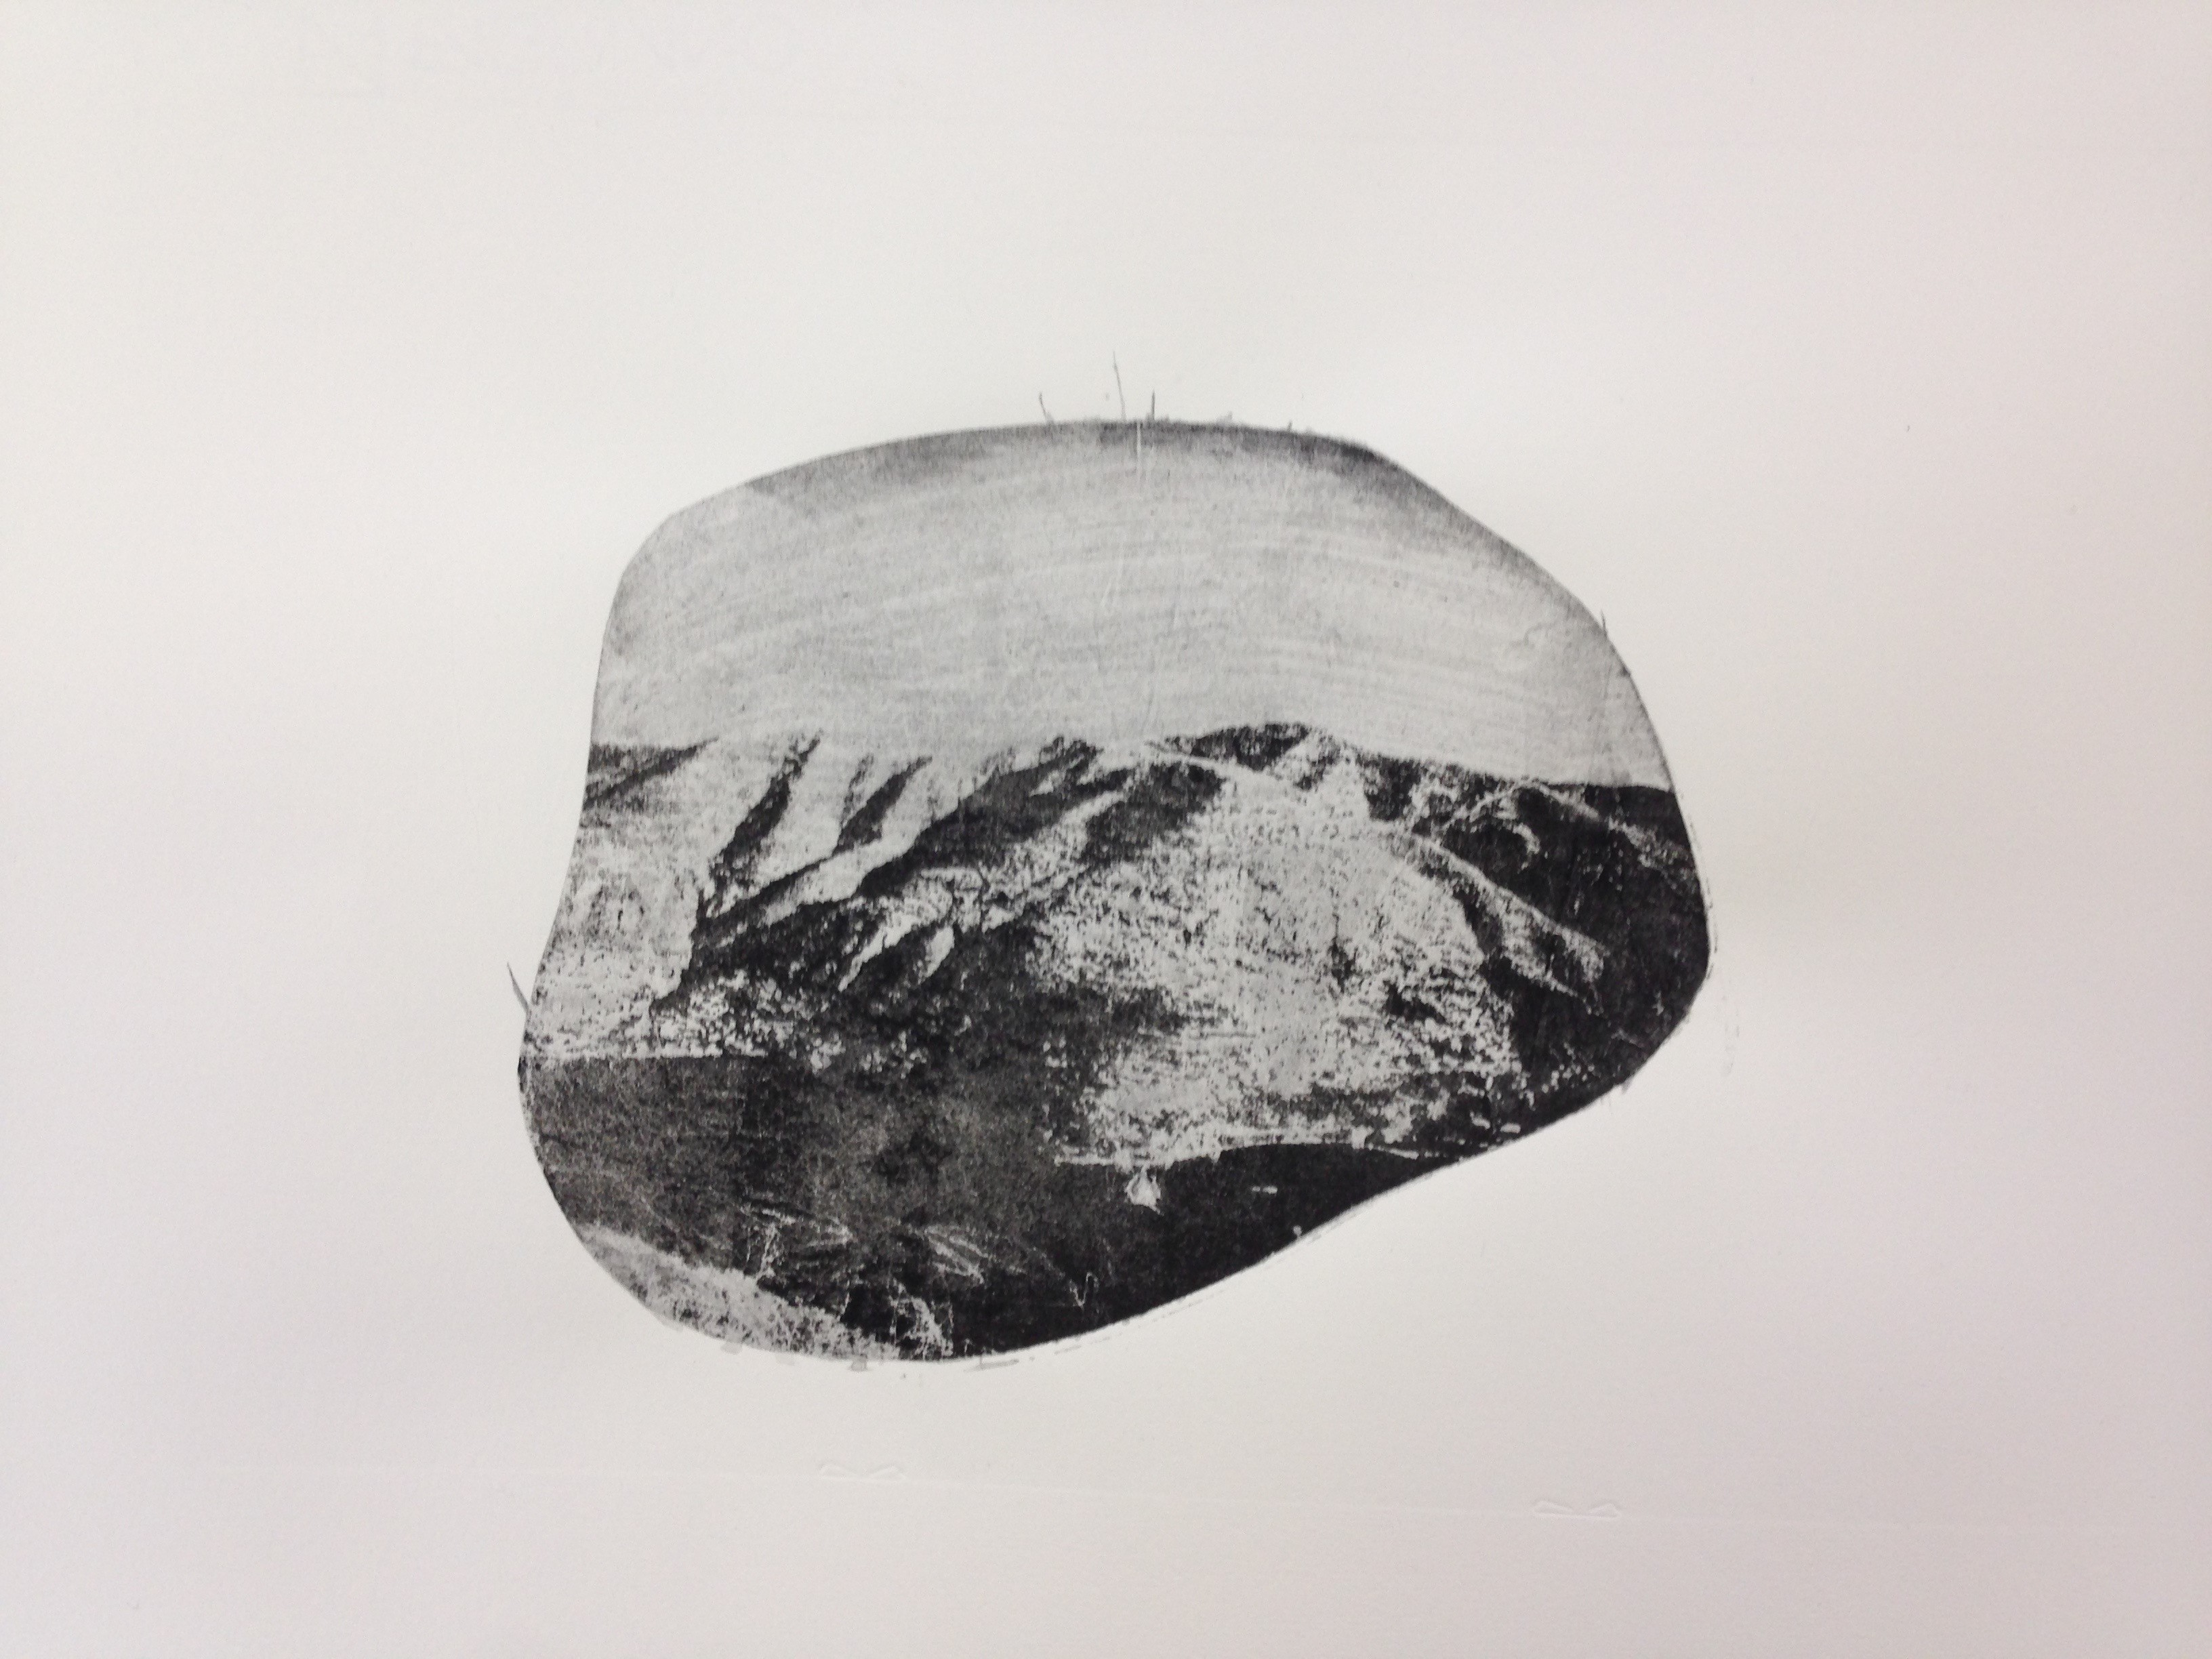 Image of work by Molly Bland